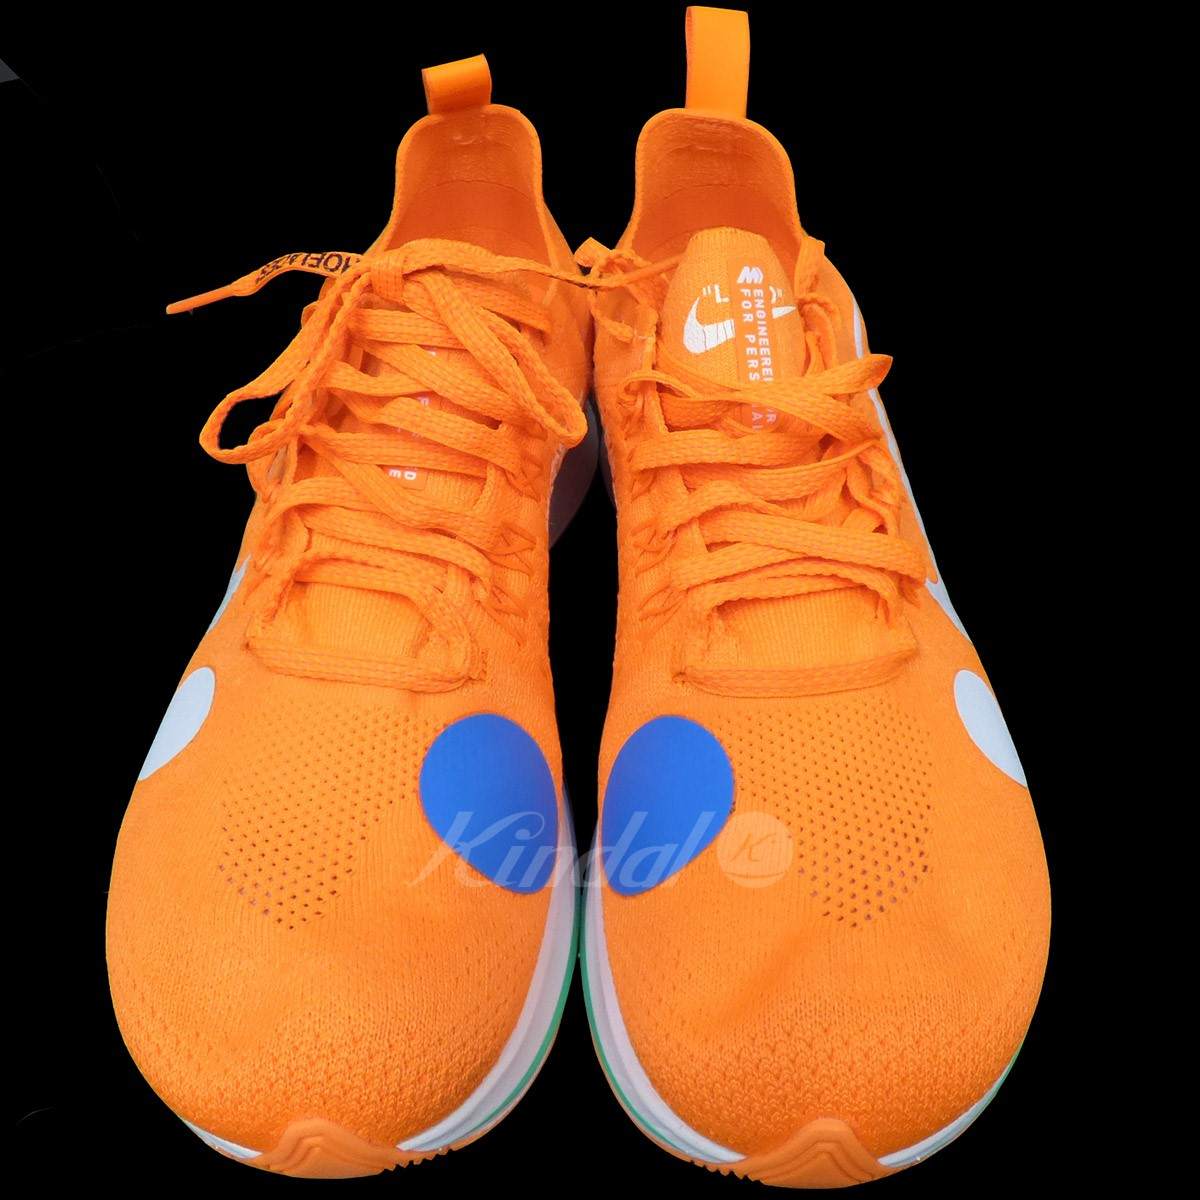 8f7cff6819819 OFF WHITE X NIKE Zoom Fly Mercurial Flyknit zoom fly fly knit sneakers  orange size  US9(27cm) (off-white Nike)